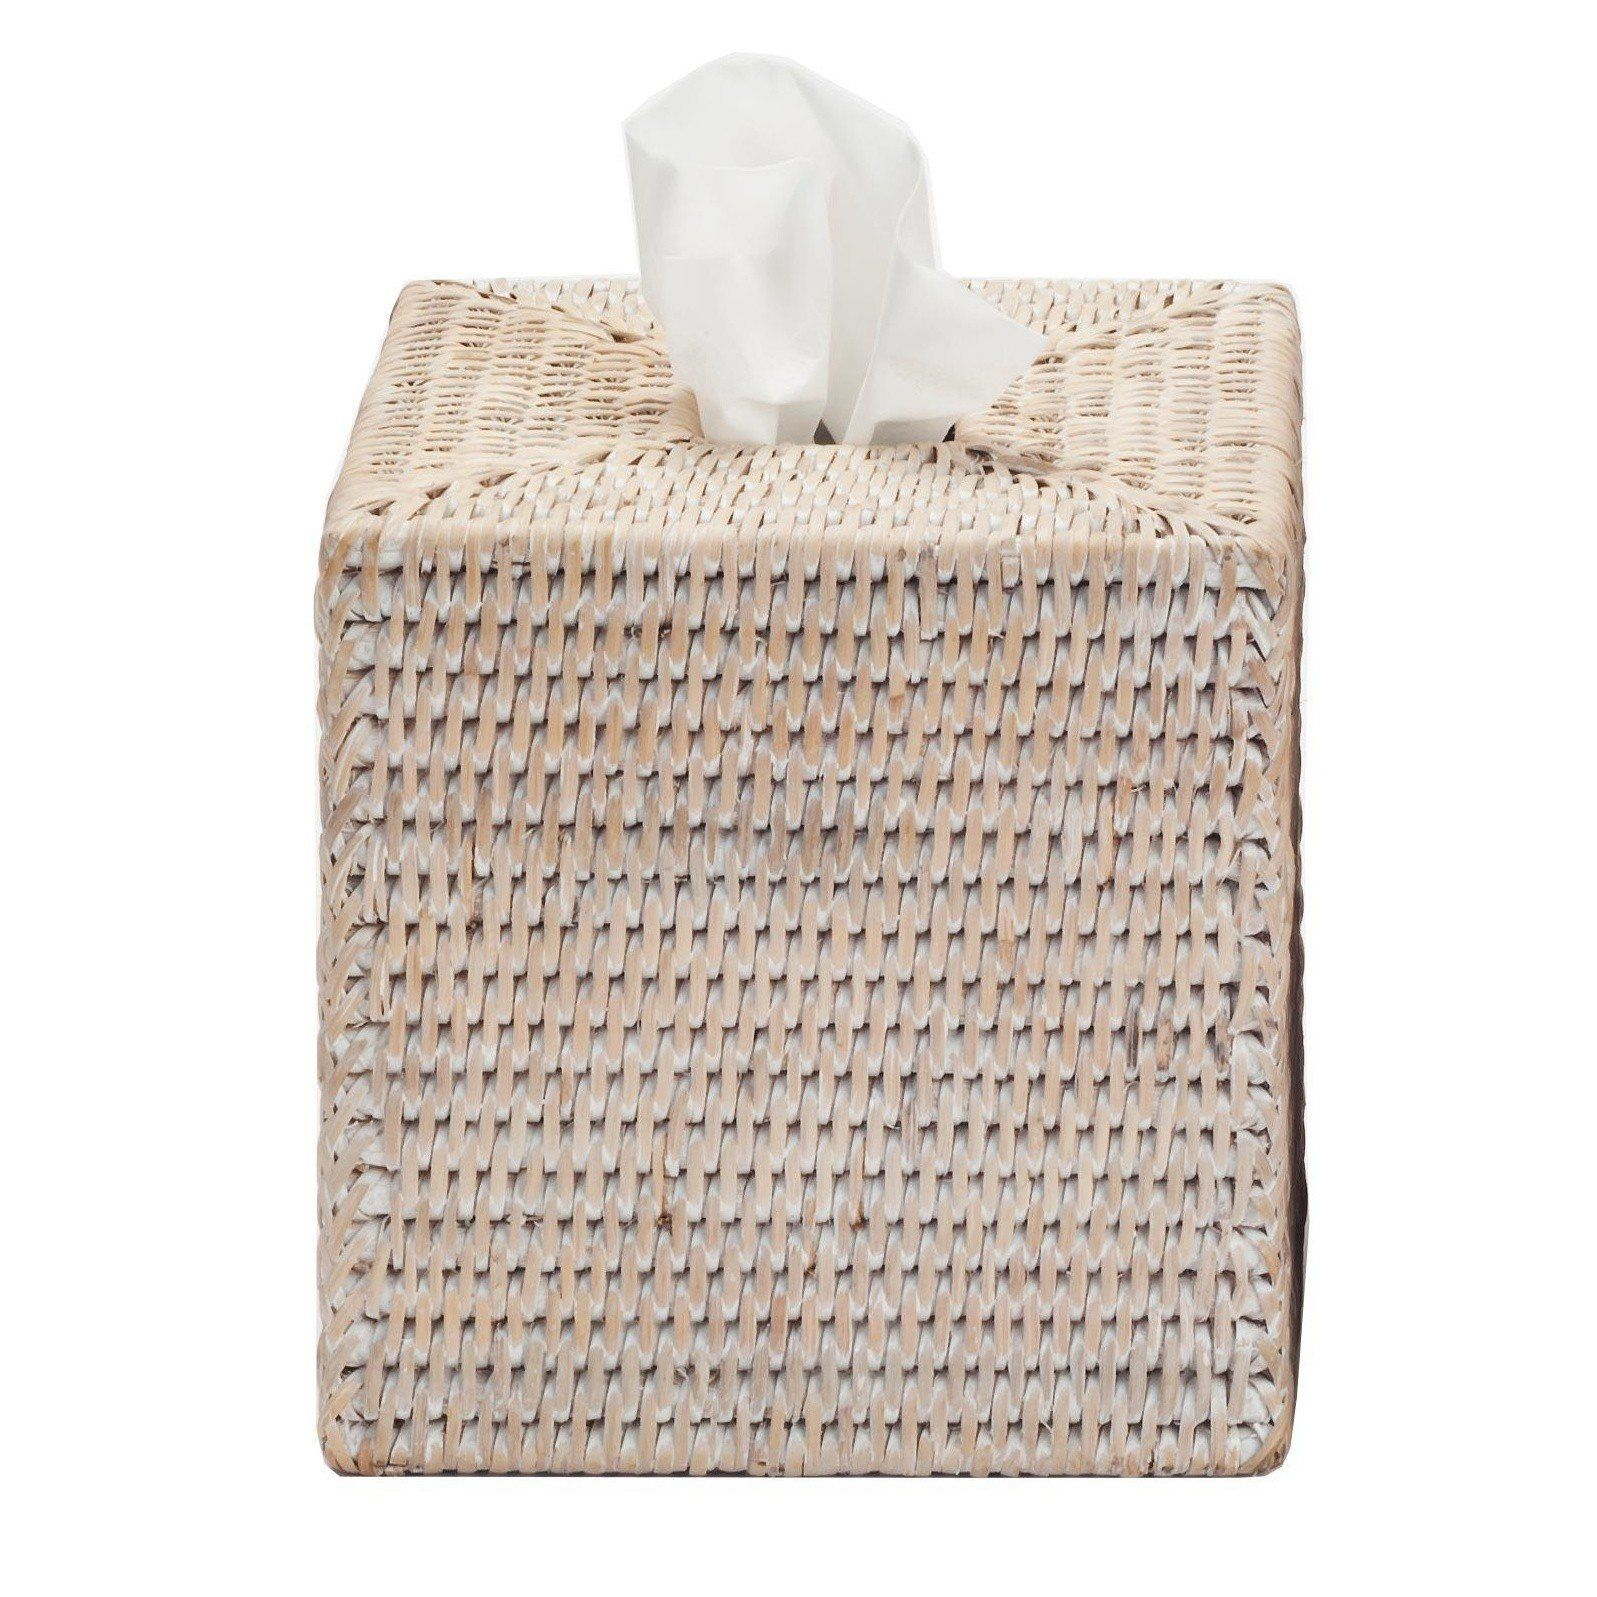 Decor Walther Basket KBQ Rattan Tissue Box